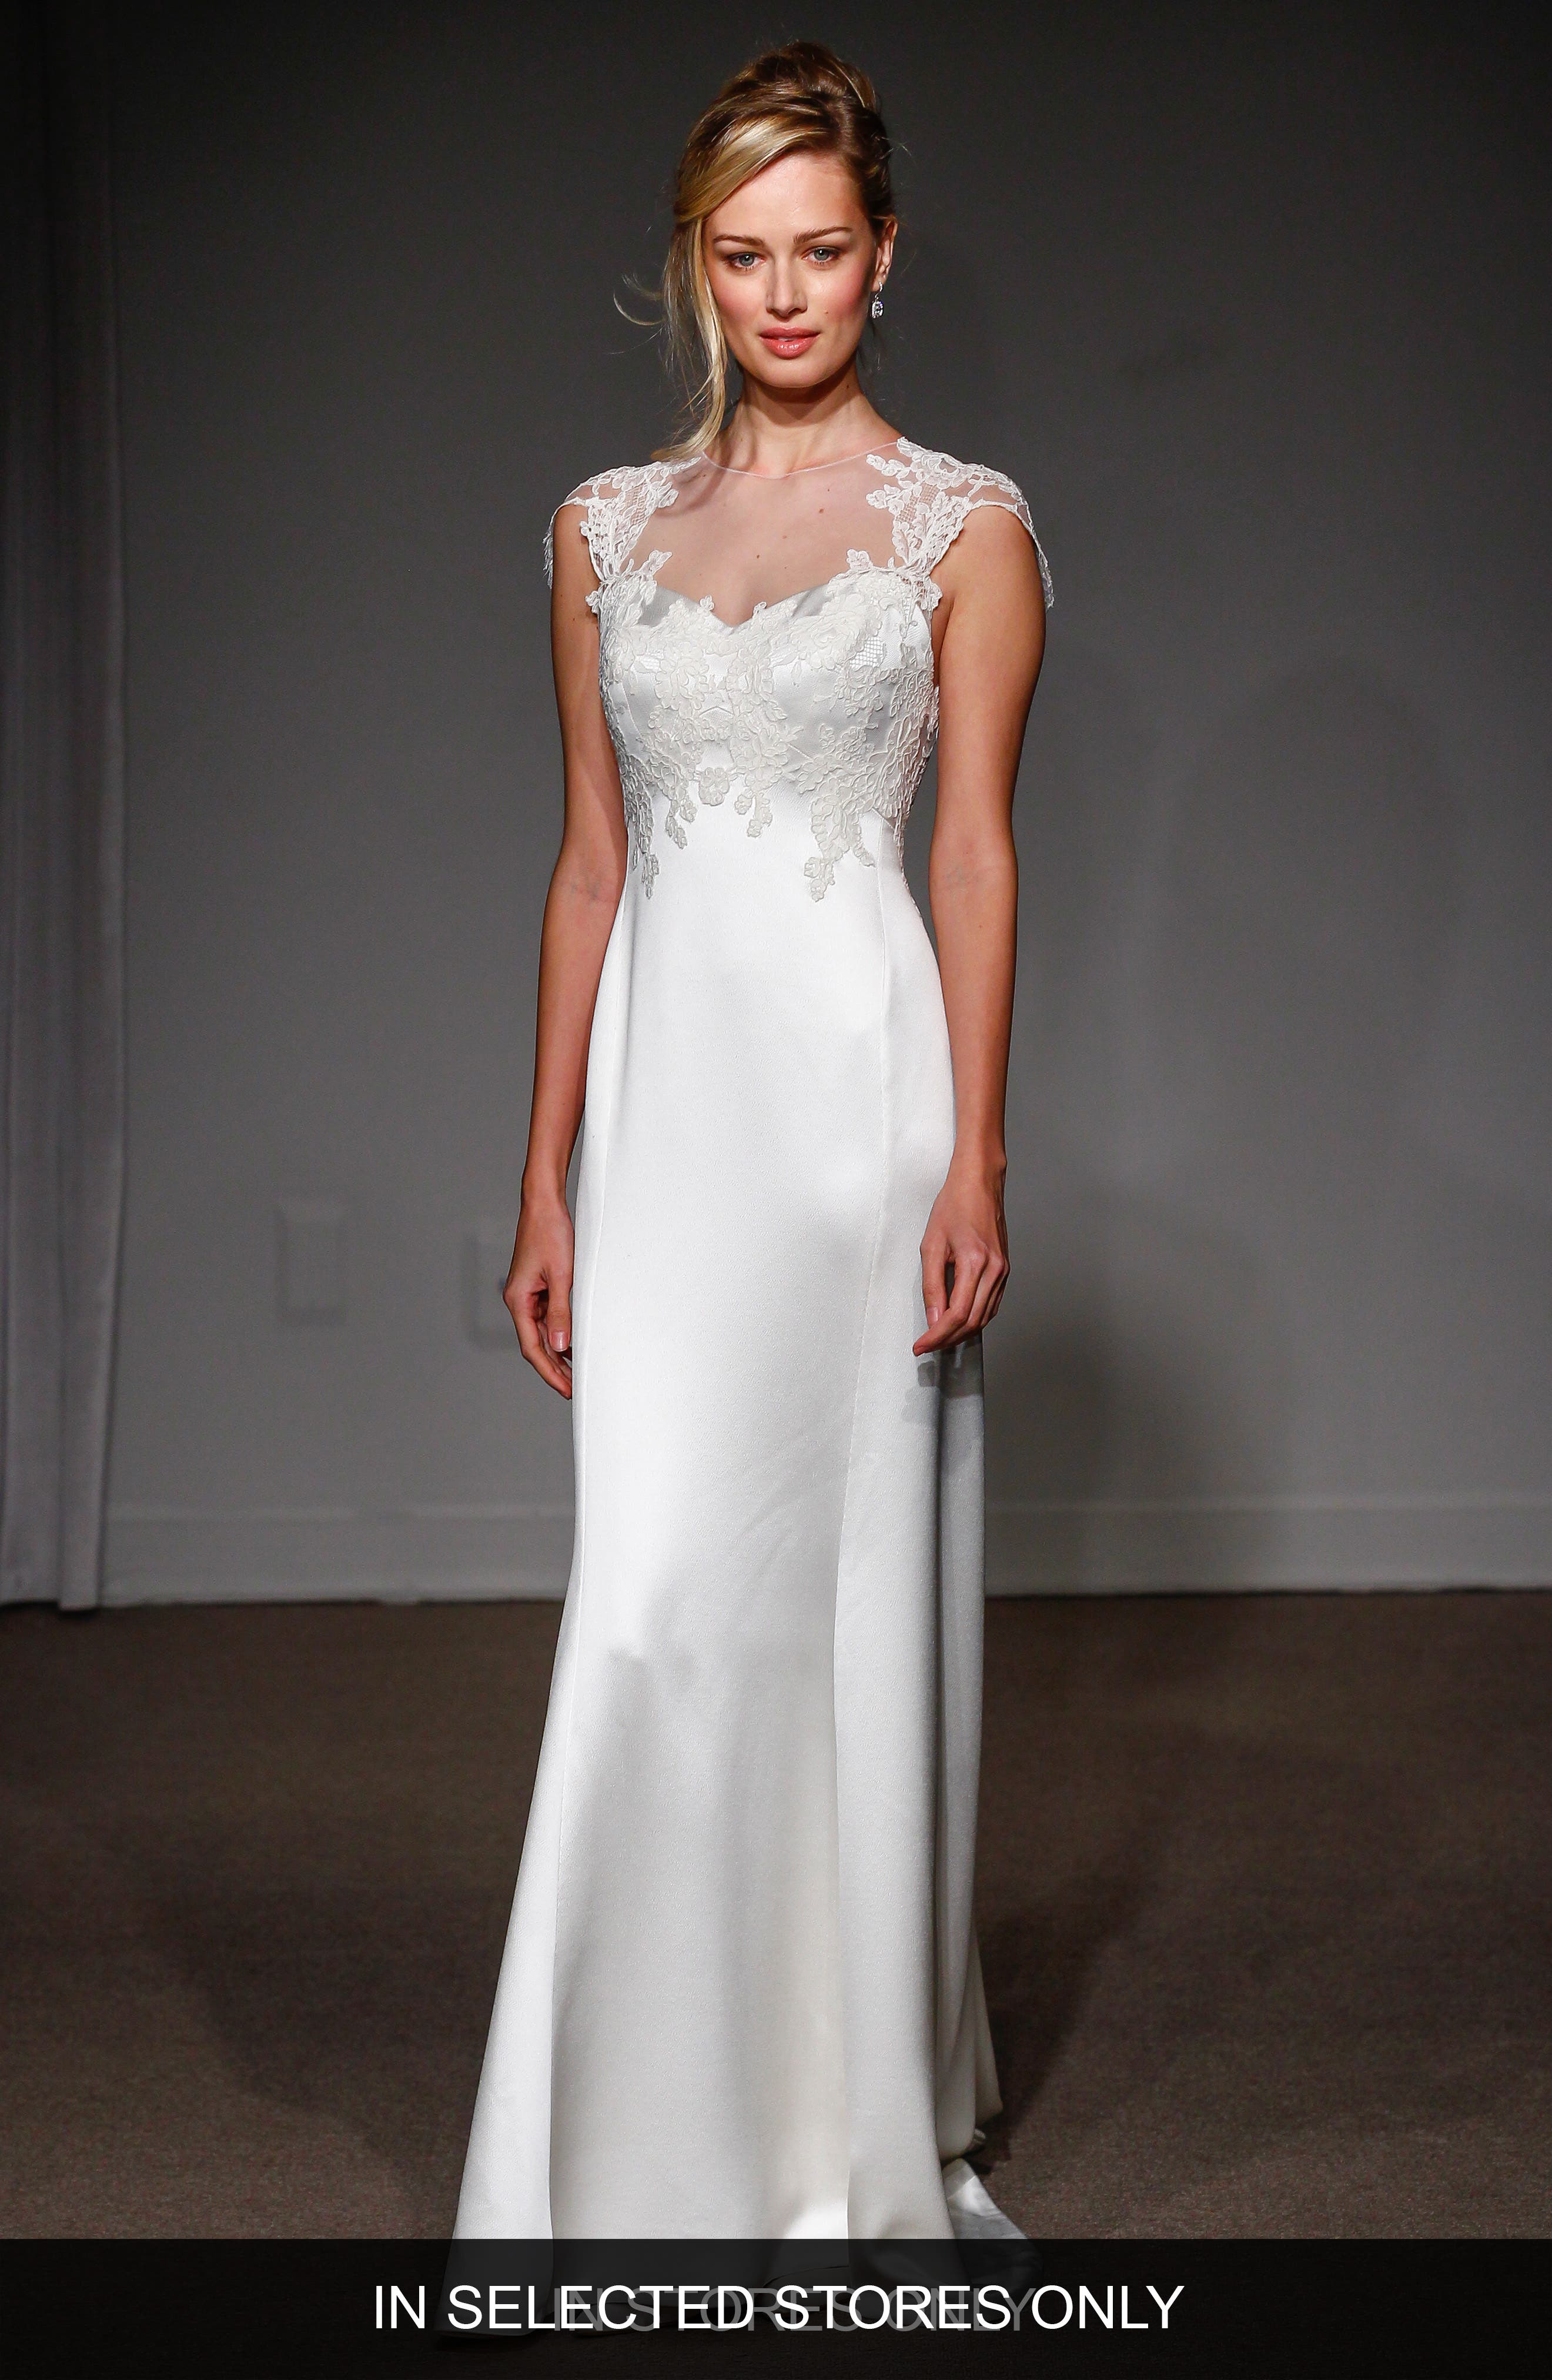 Anna Maier Couture 'Grace' Illusion Neck Lace & Satin A-Line Gown (In Stores Only)